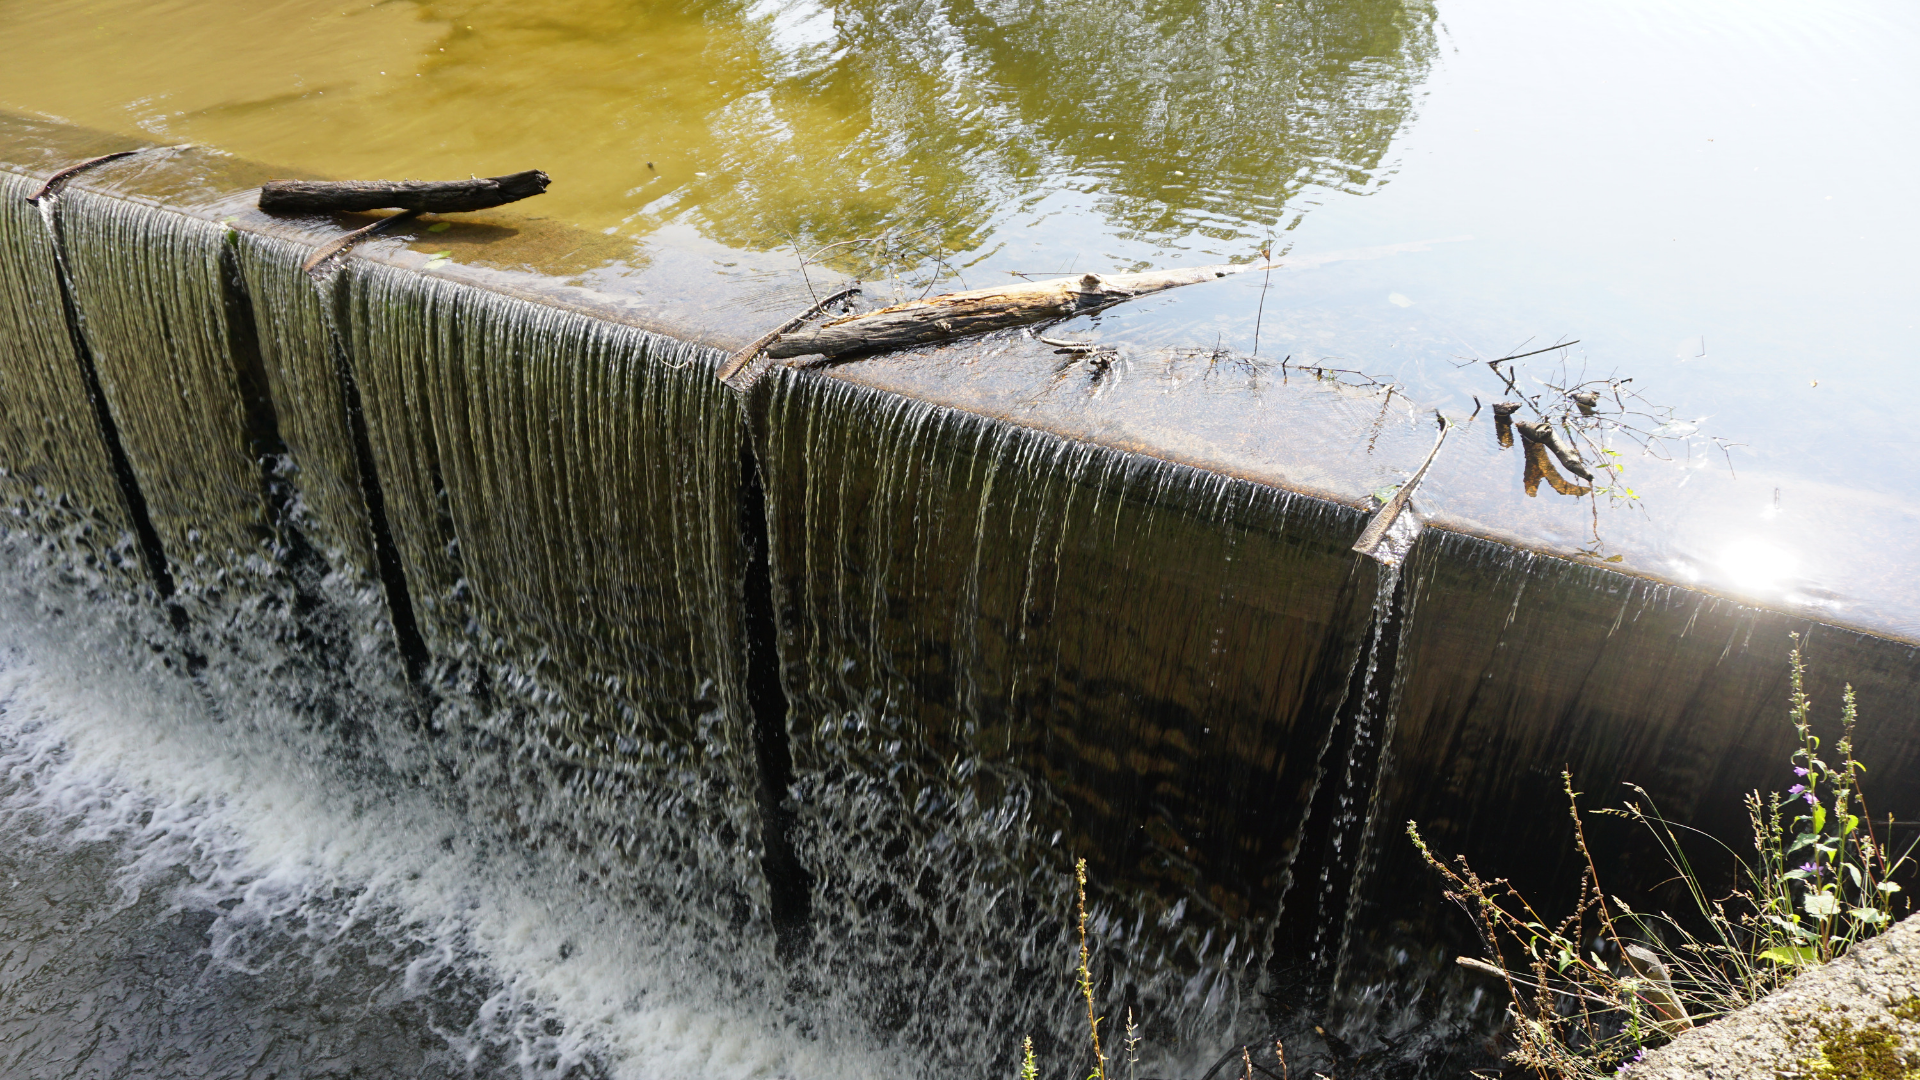 water cascades over a dam. Murky water is visible above the dam, with vegetation and other growth visible.